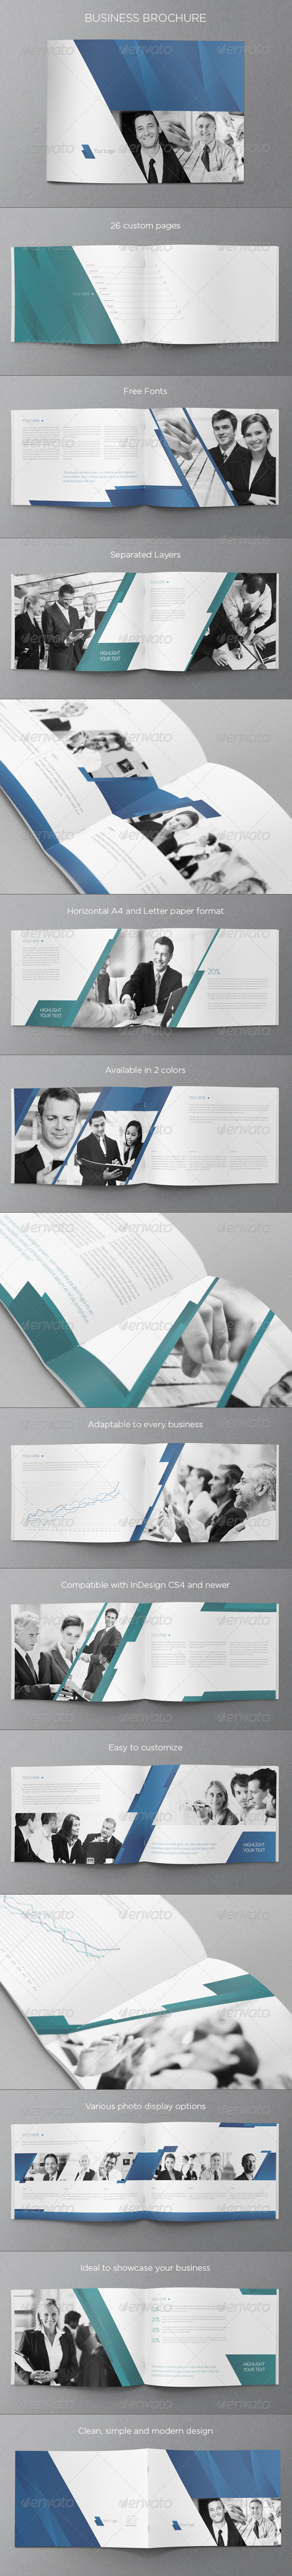 GraphicRiver Business Brochure 5209636